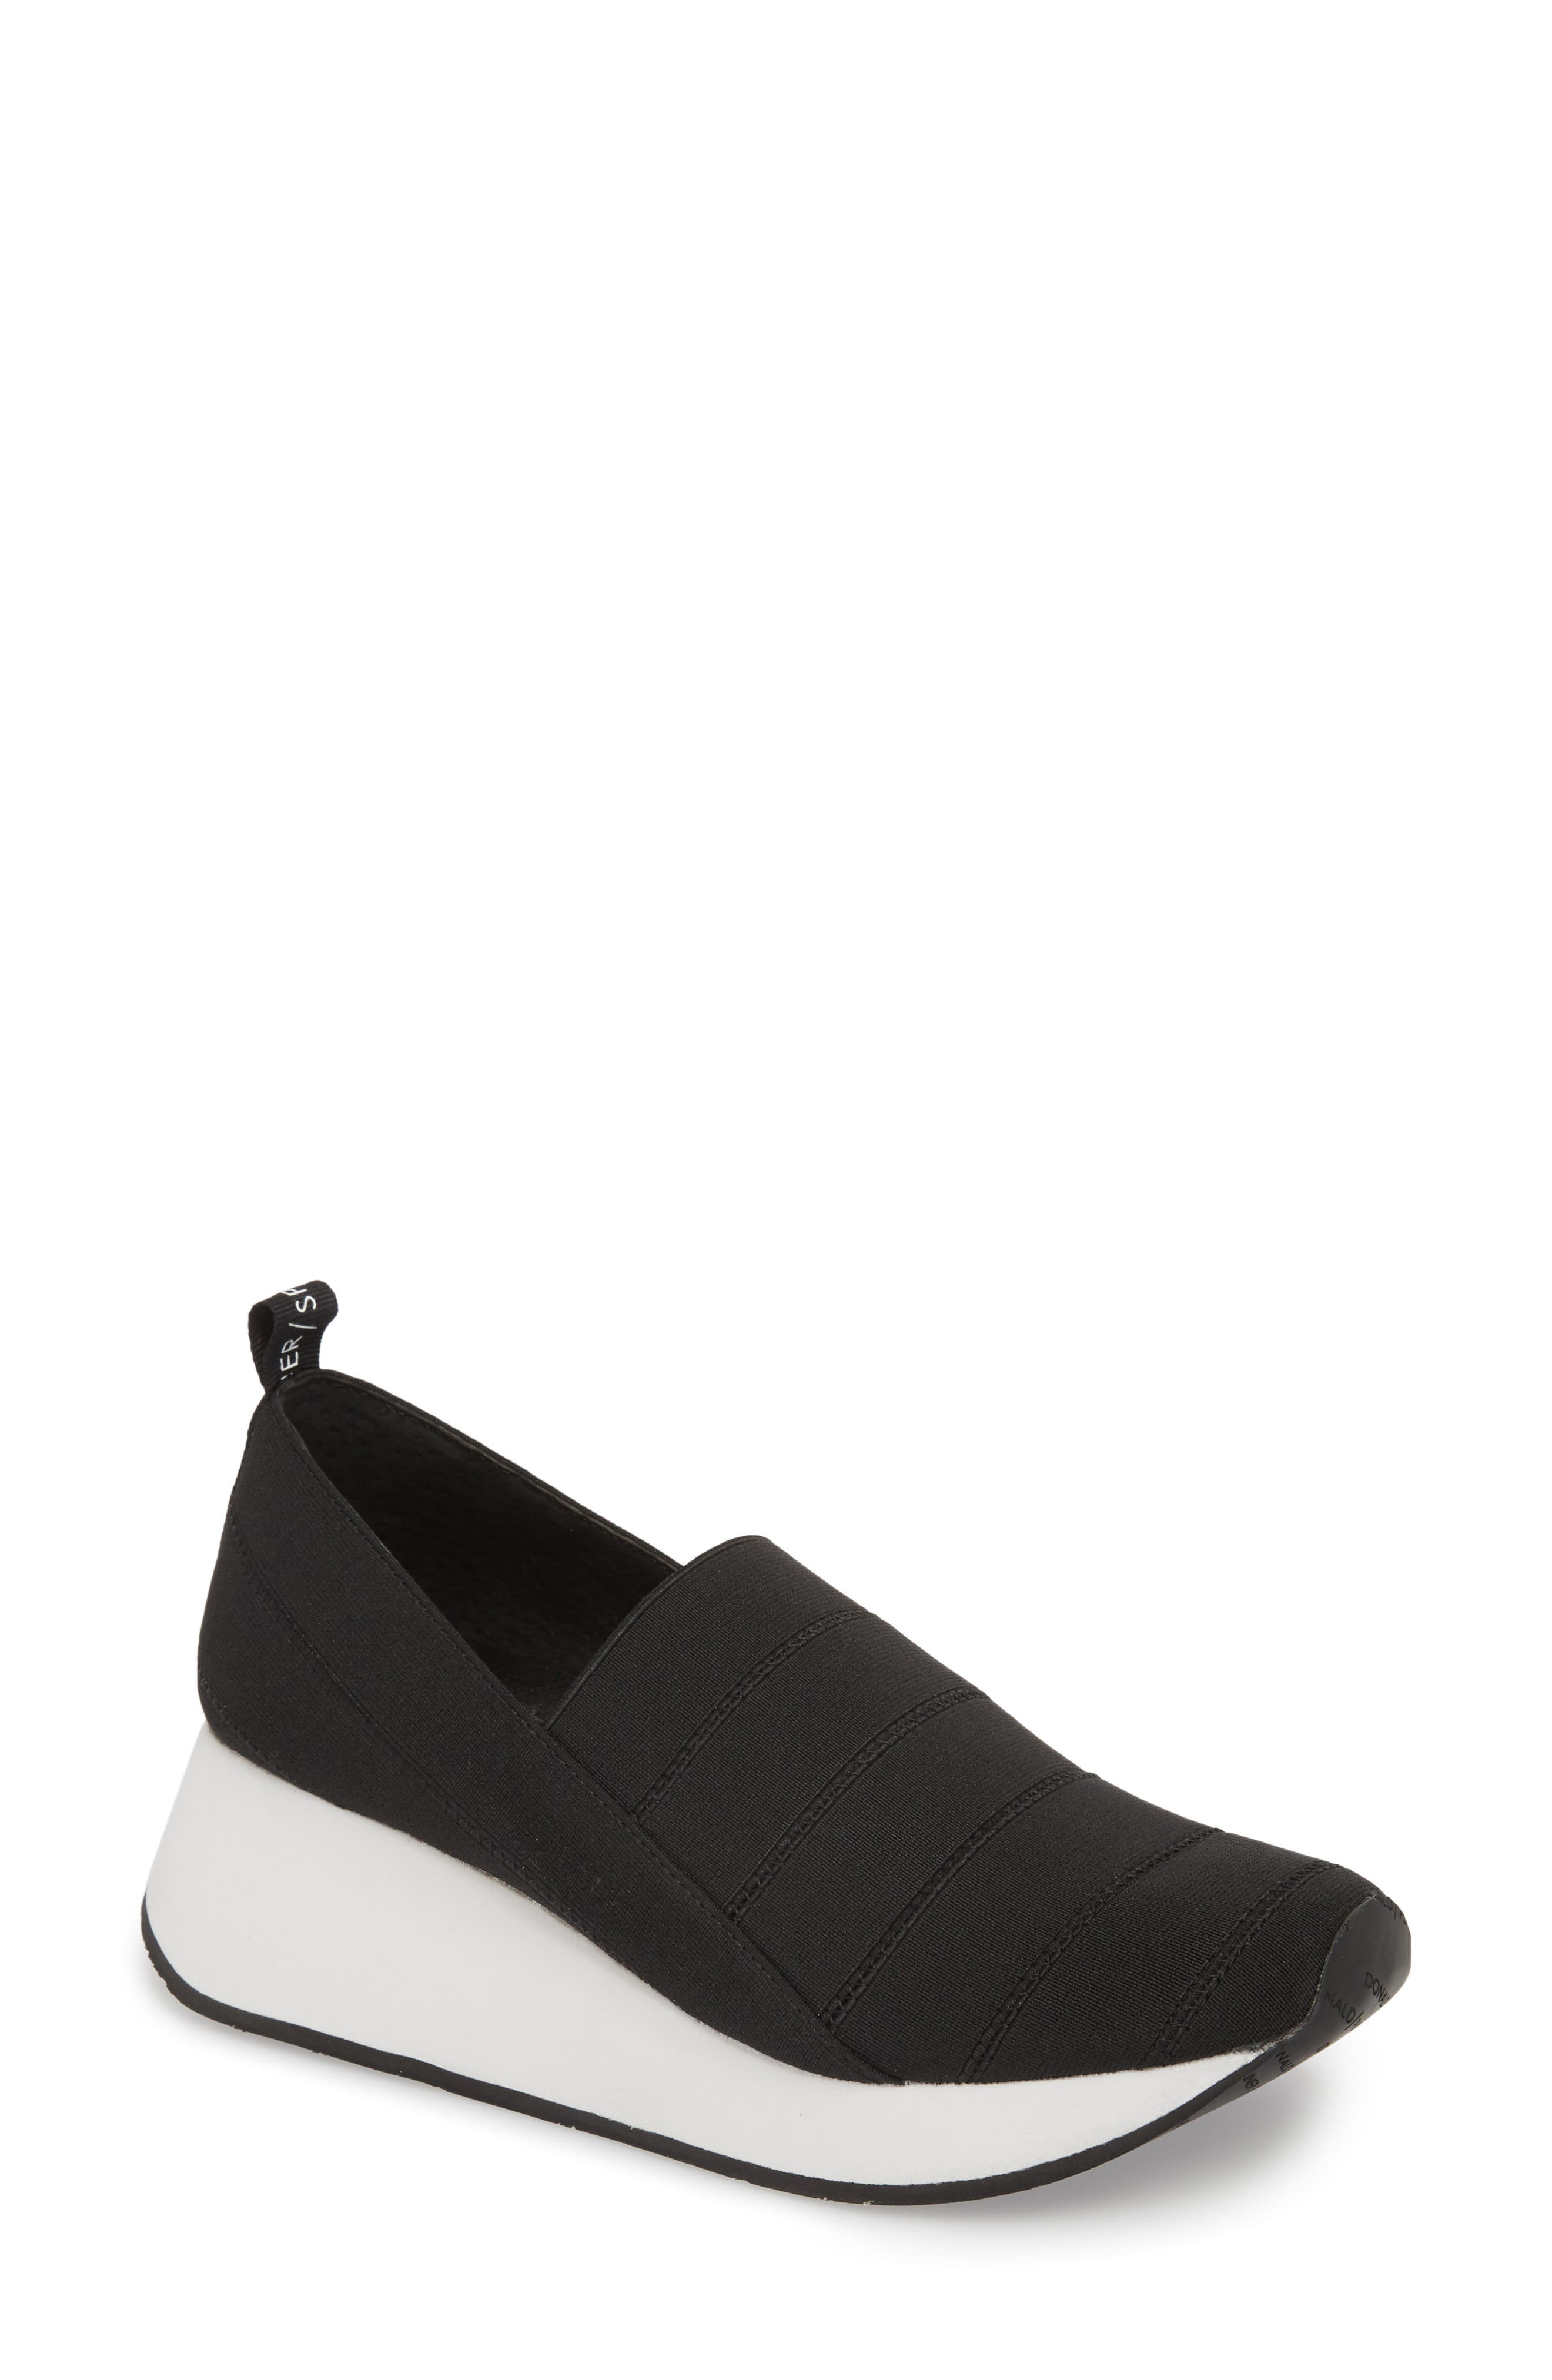 Piper Platform Slip-On Sneaker,                         Main,                         color, BLACK STRETCH FABRIC